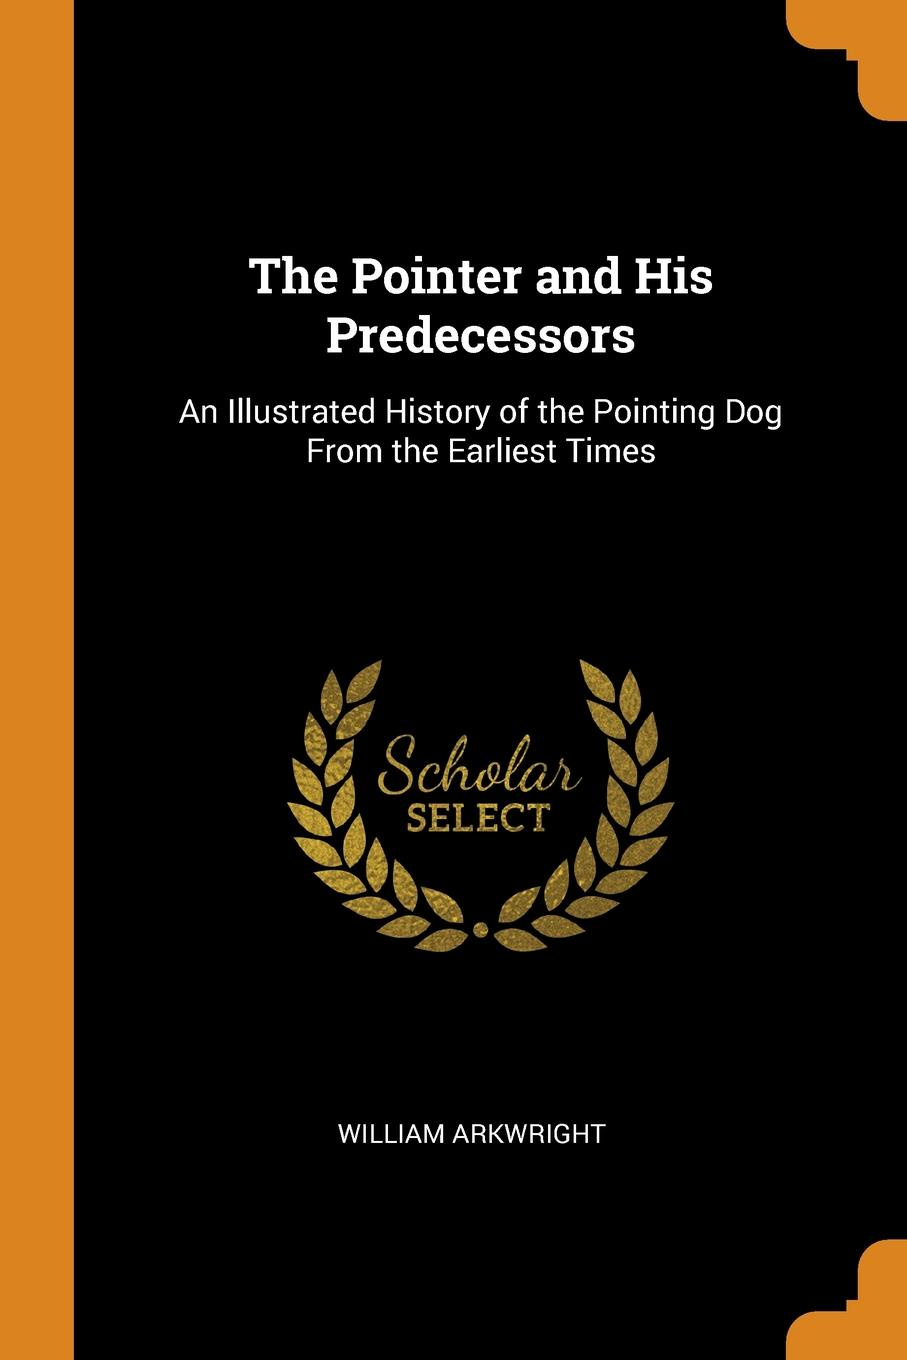 William Arkwright The Pointer and His Predecessors. An Illustrated History of the Pointing Dog From the Earliest Times